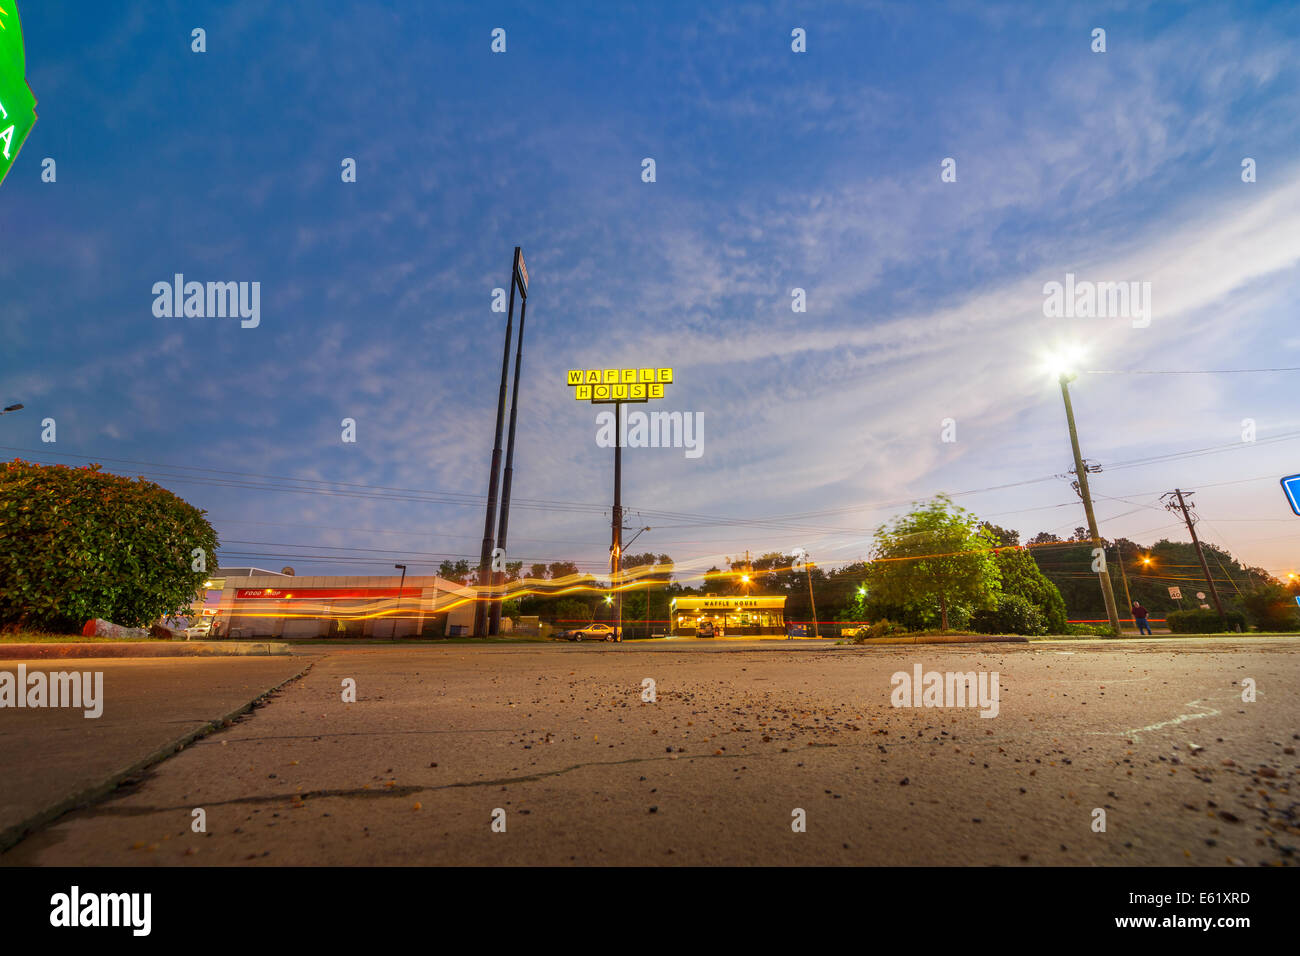 Waffle House Restaurant roadside diner at night evening dusk with light streaks Montgomery Alabama interstate highway - Stock Image